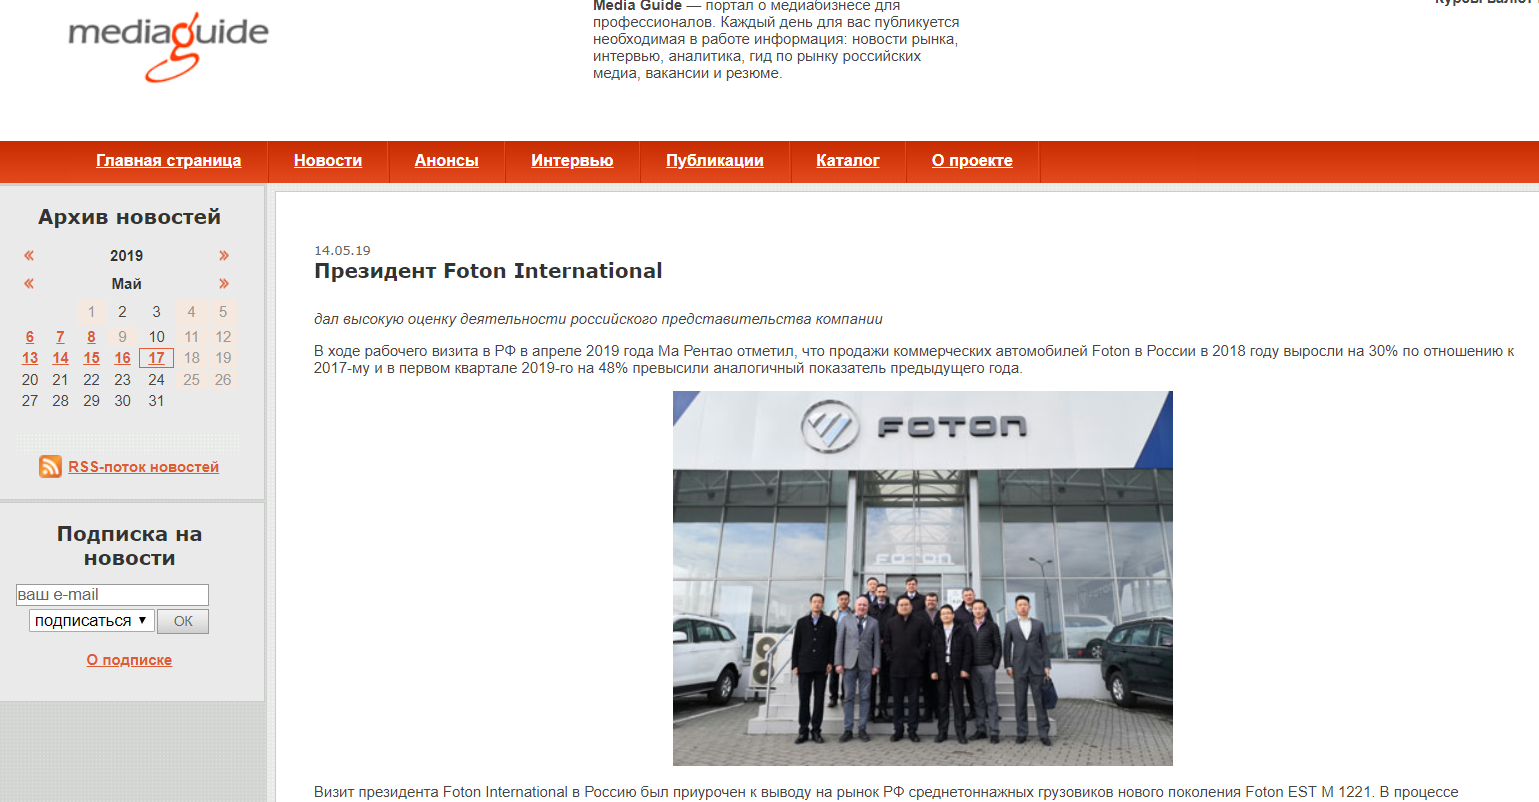 Президент Foton International